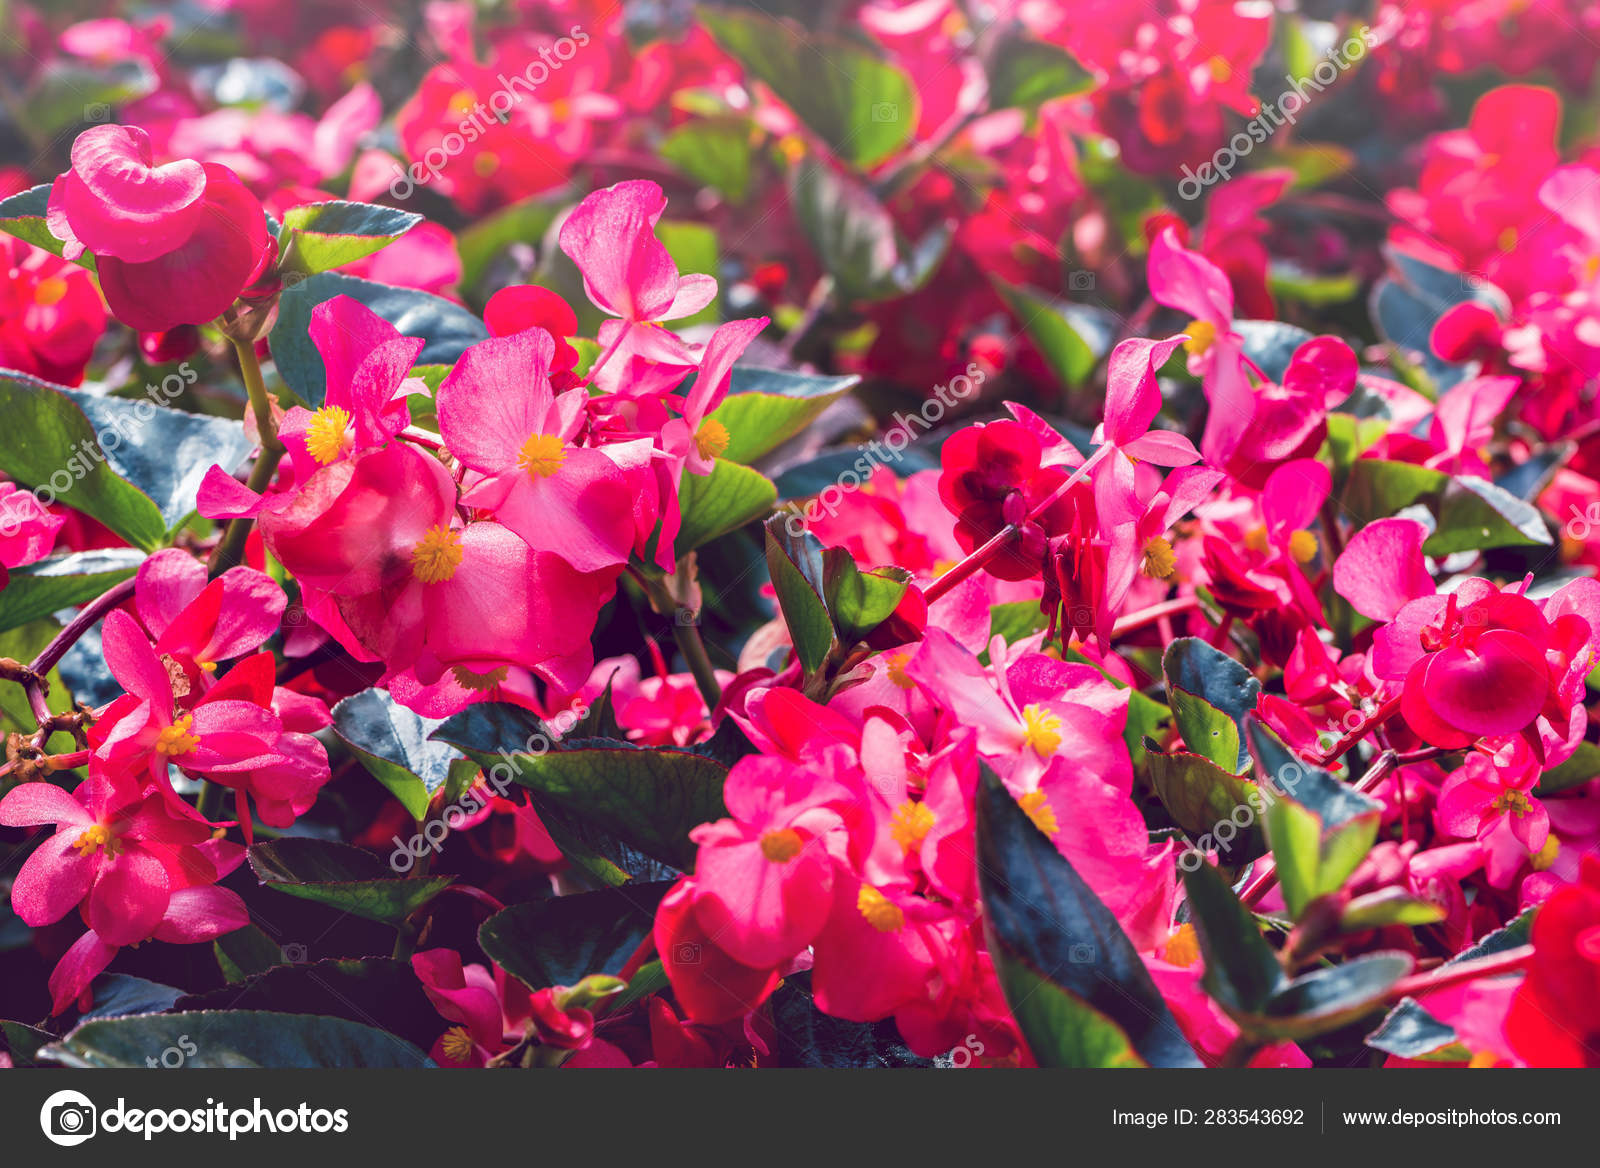 background nature flower garden flowers red flowers stock photo c last19 283543692 https depositphotos com 283543692 stock photo background nature flower garden flowers html